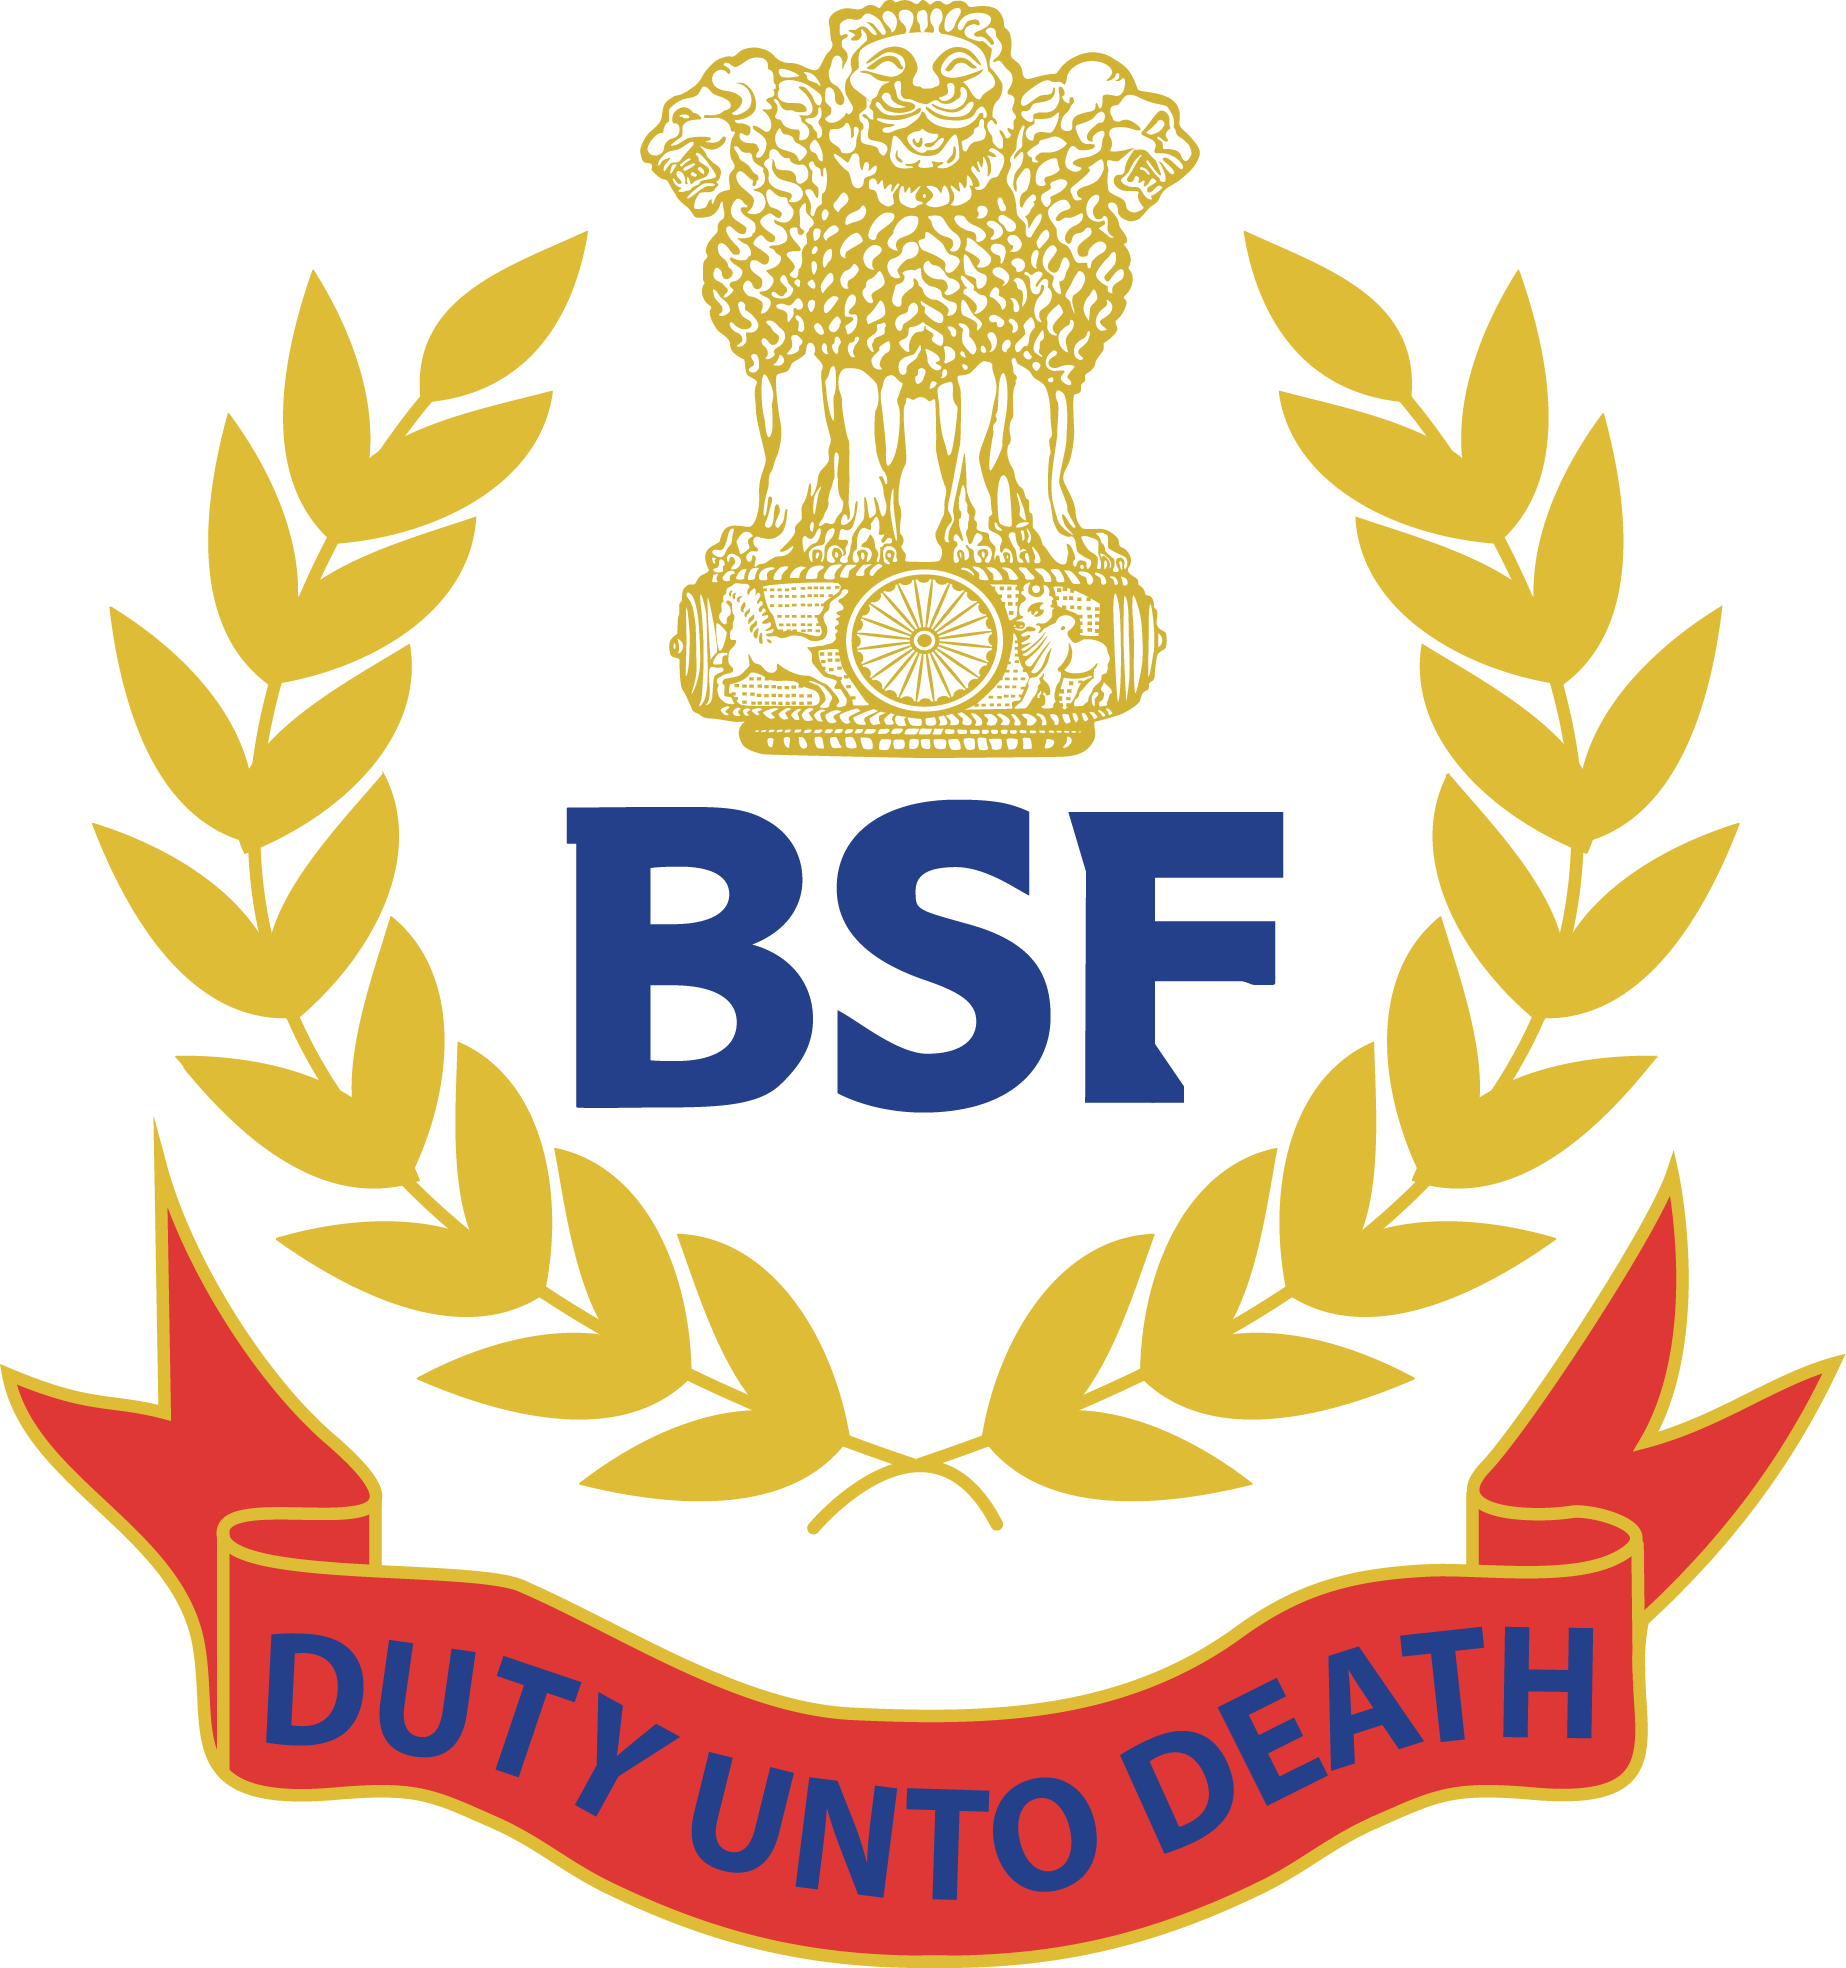 BSF Logo (Border Security Force) Download Vector.